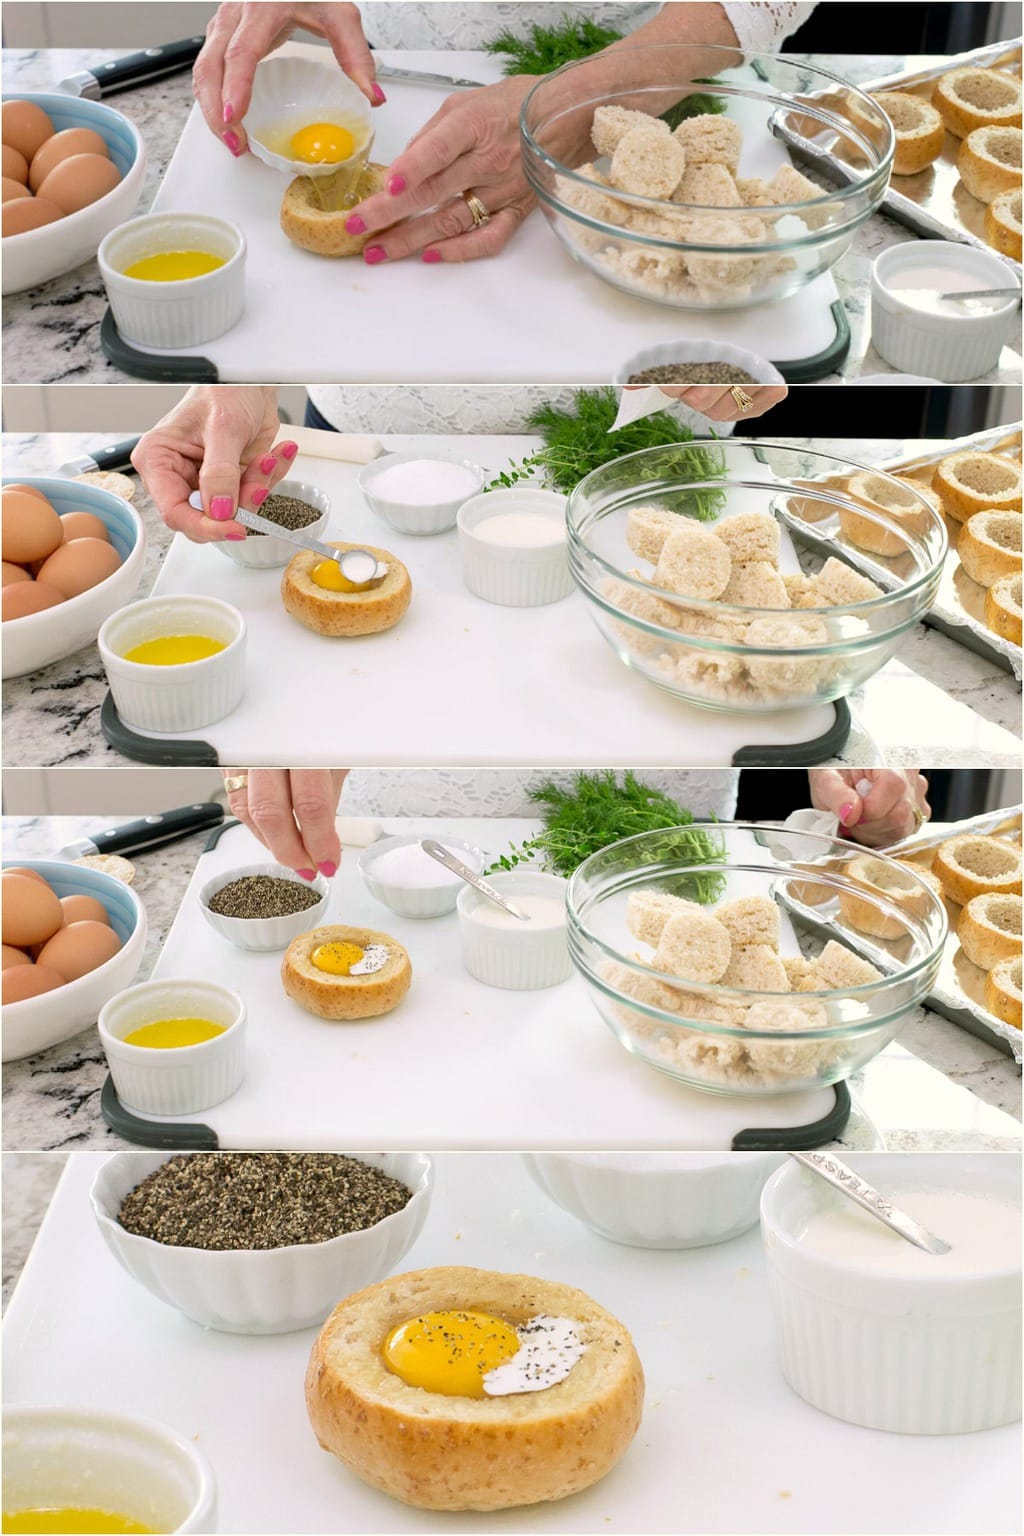 Step-by-step photo collage of how to make Baked Eggs in Bread Baskets - Part 3